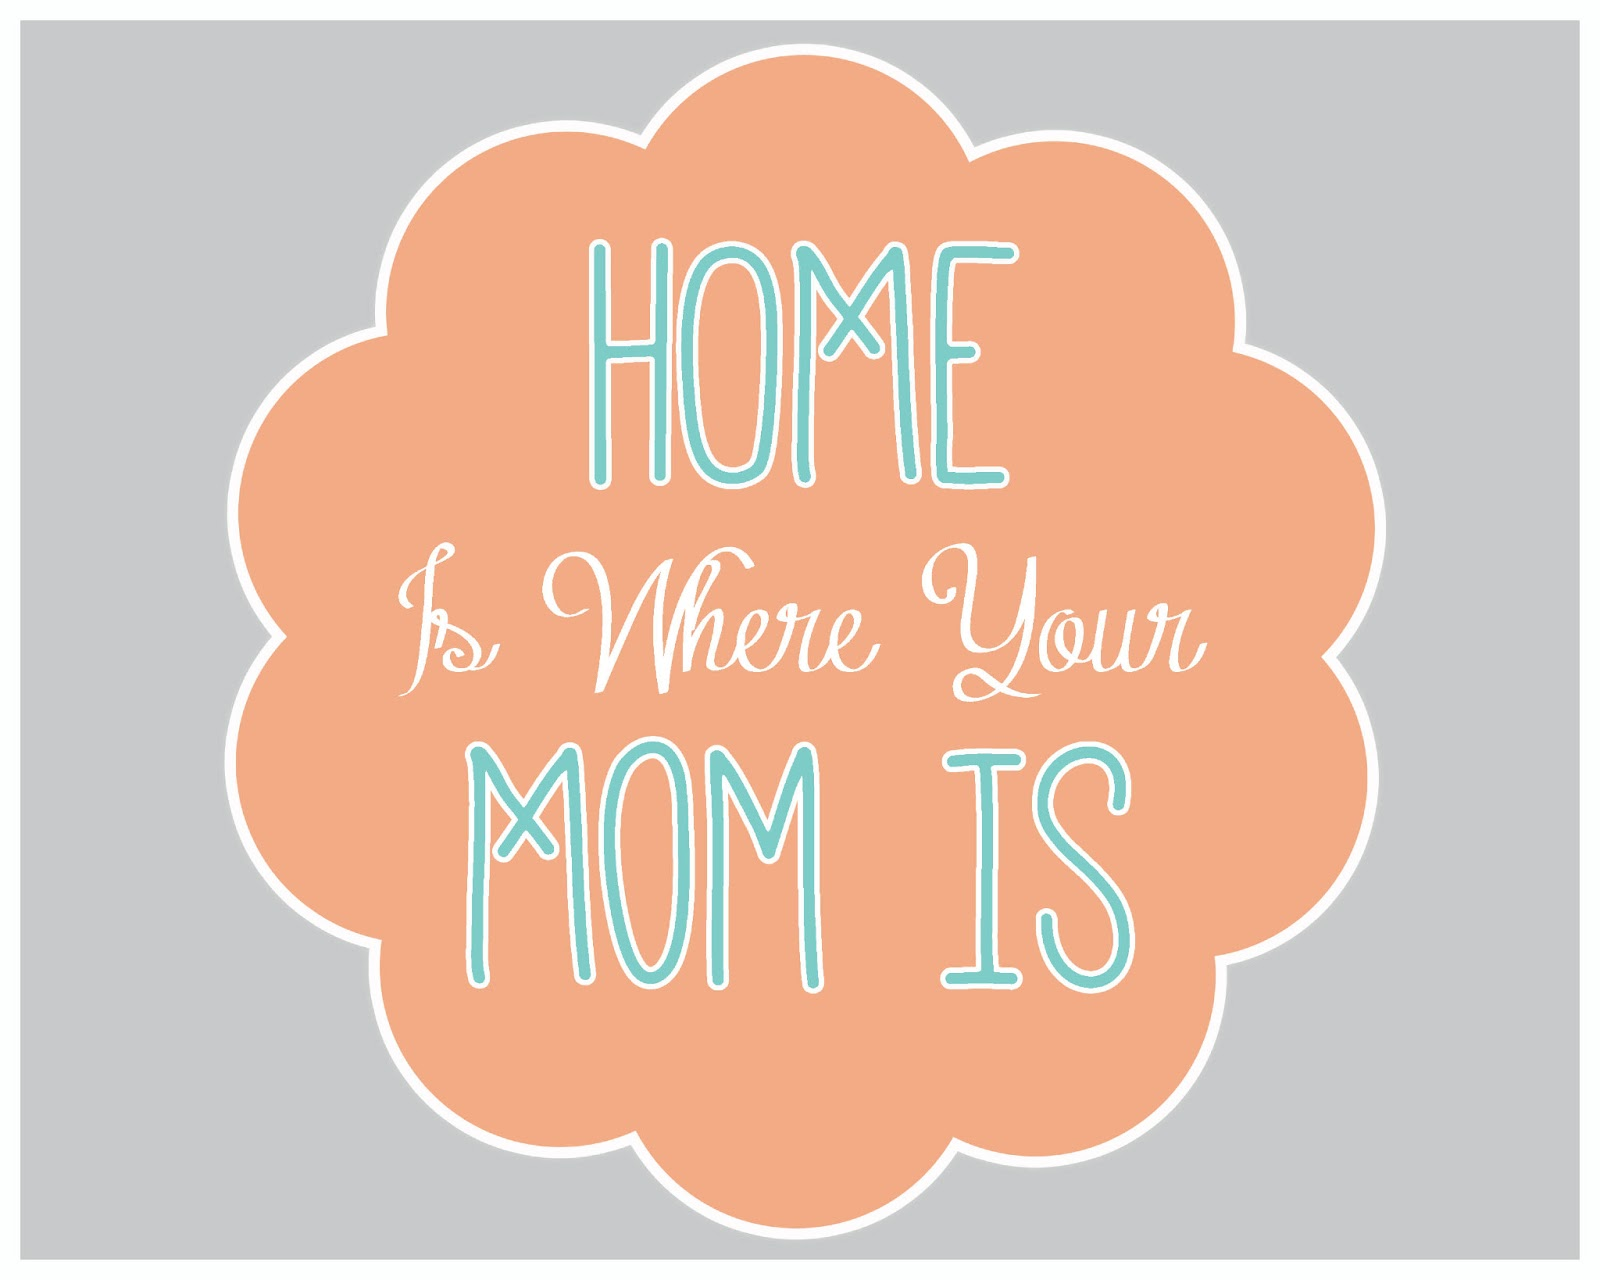 Mami's home!